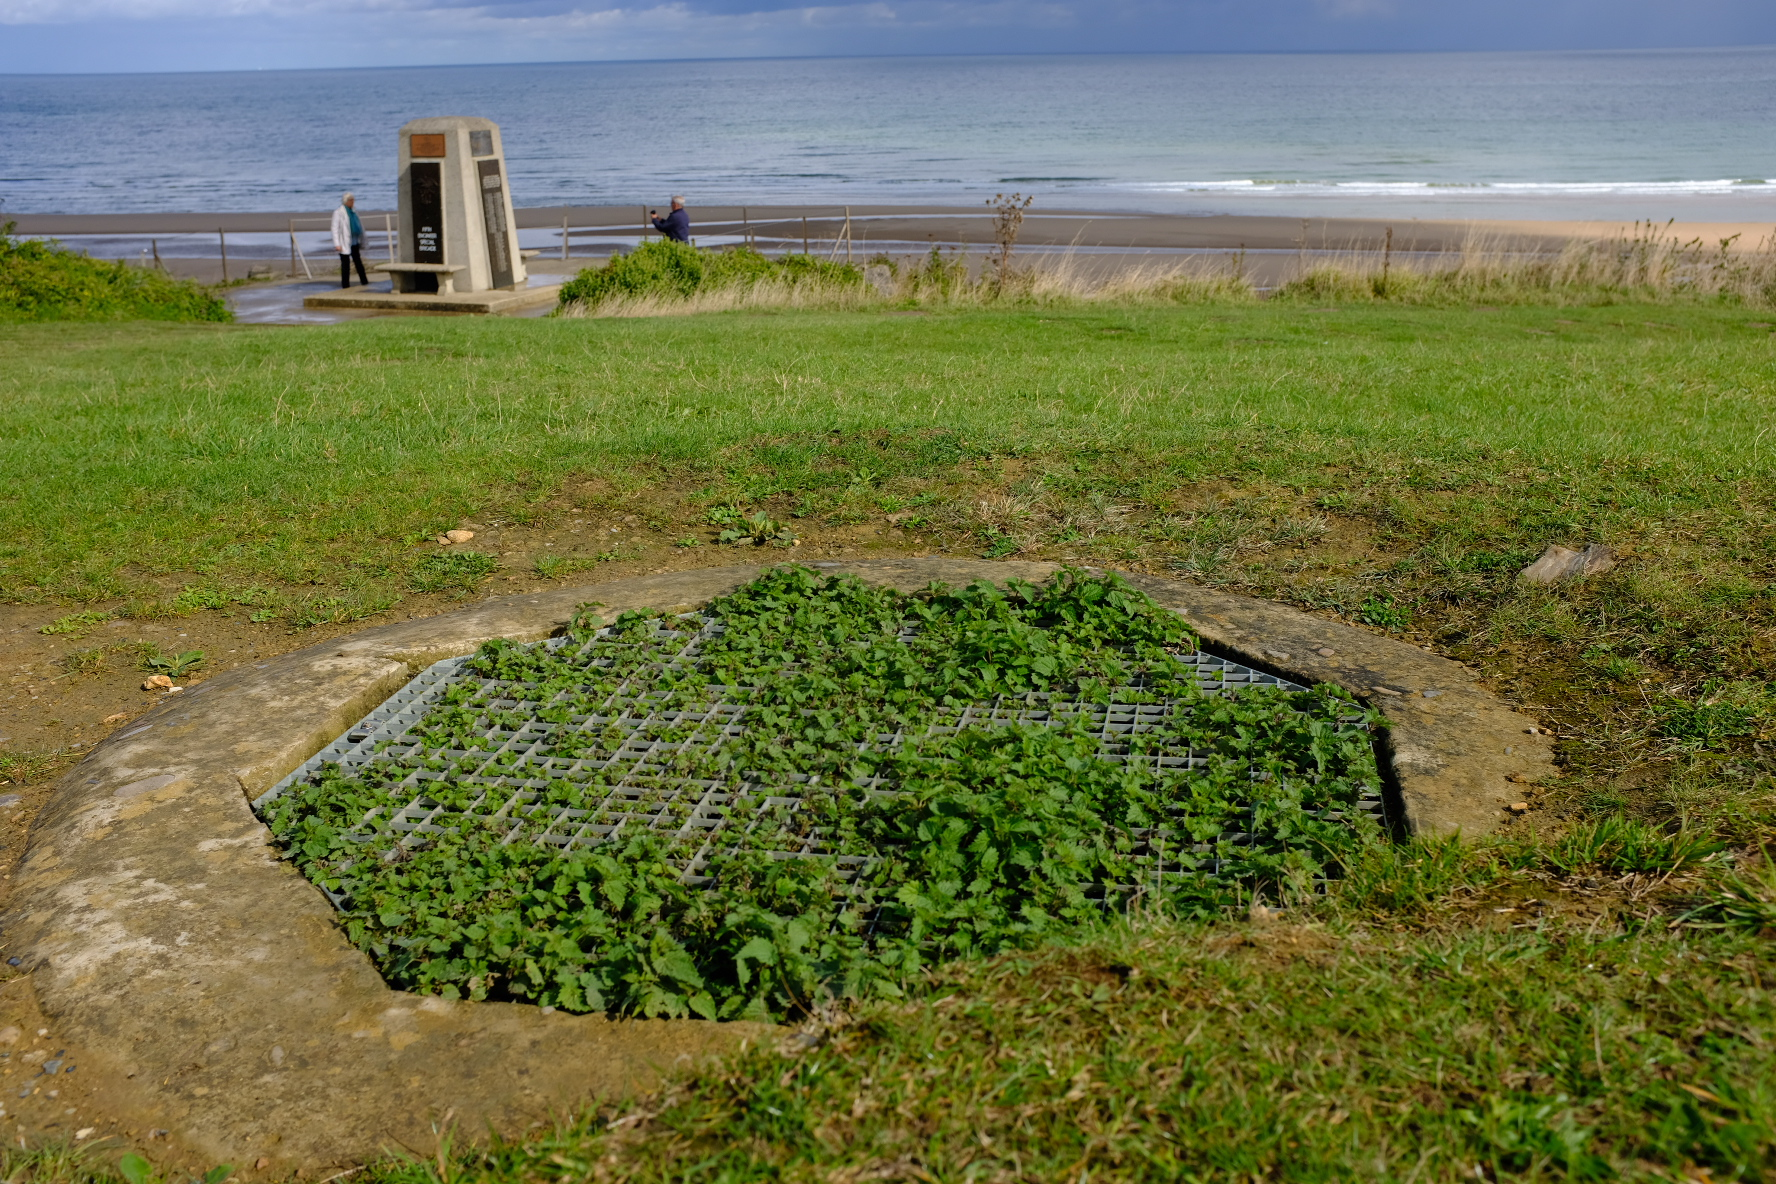 One of the many Nazi machine gun nests tucked in the bluff above Omaha beach at Colleville-sur-mer.